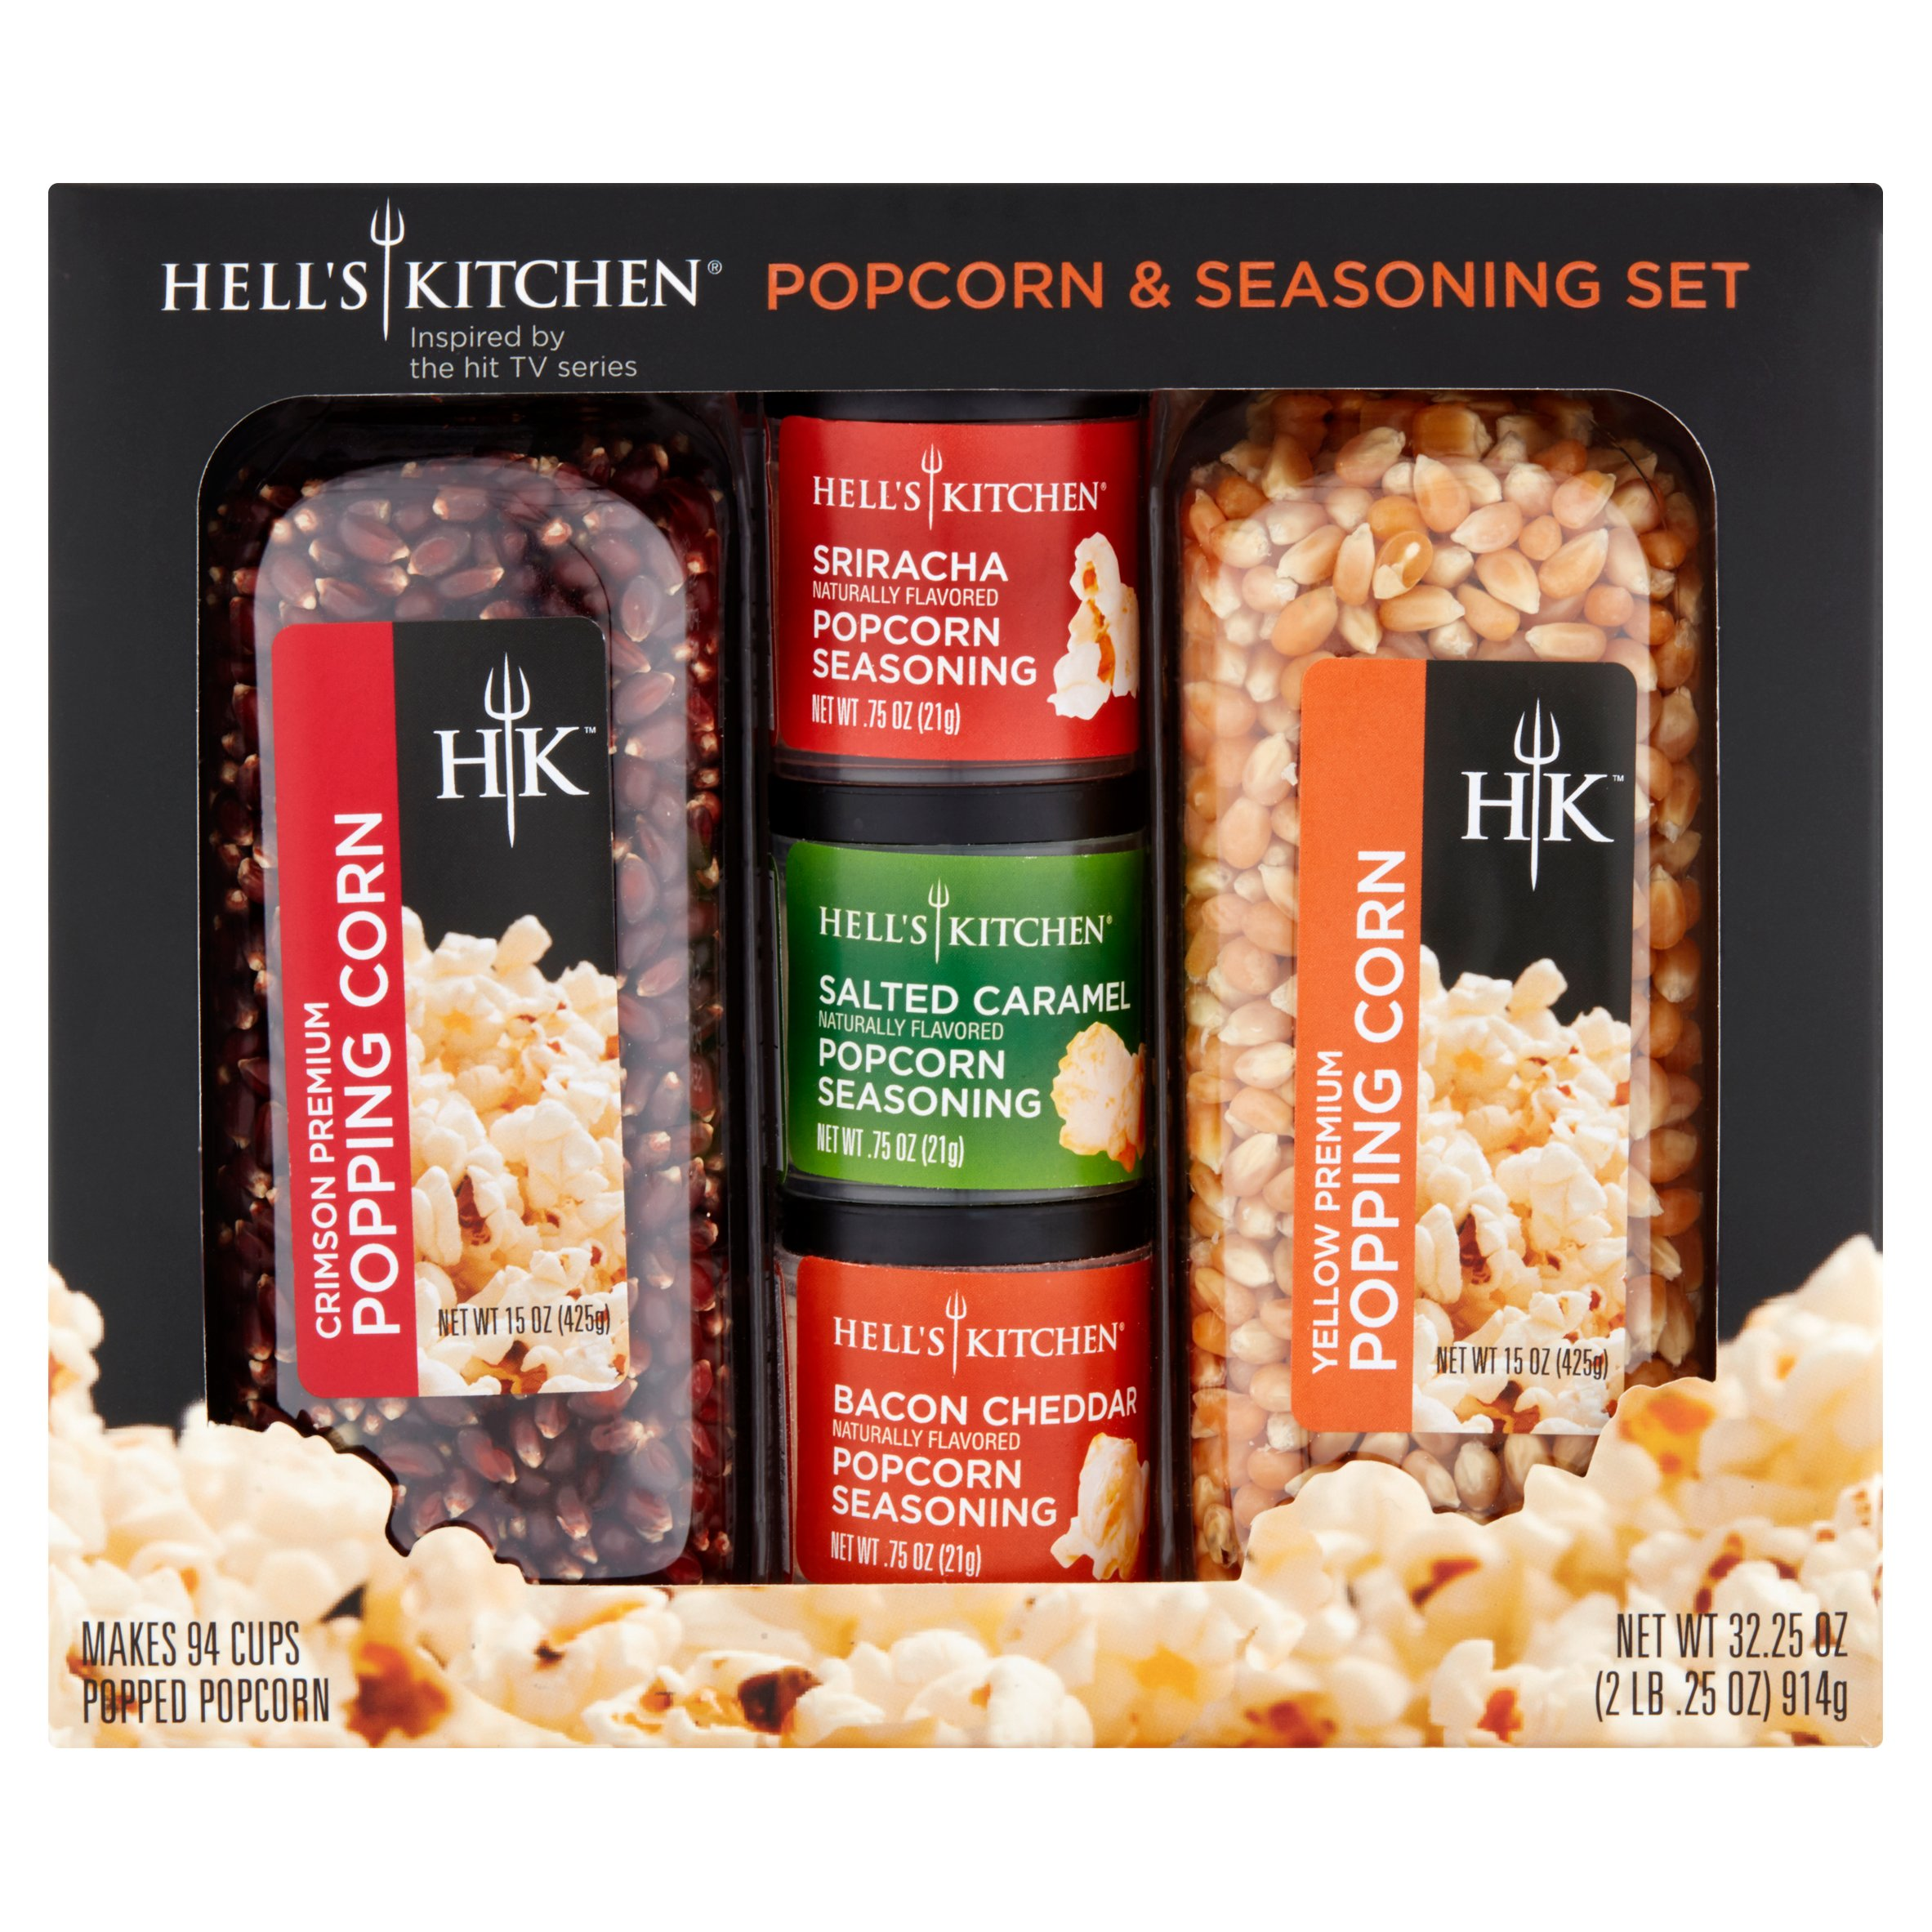 Hell's Kitchen Popcorn & Seasoning Set, 32.25 oz